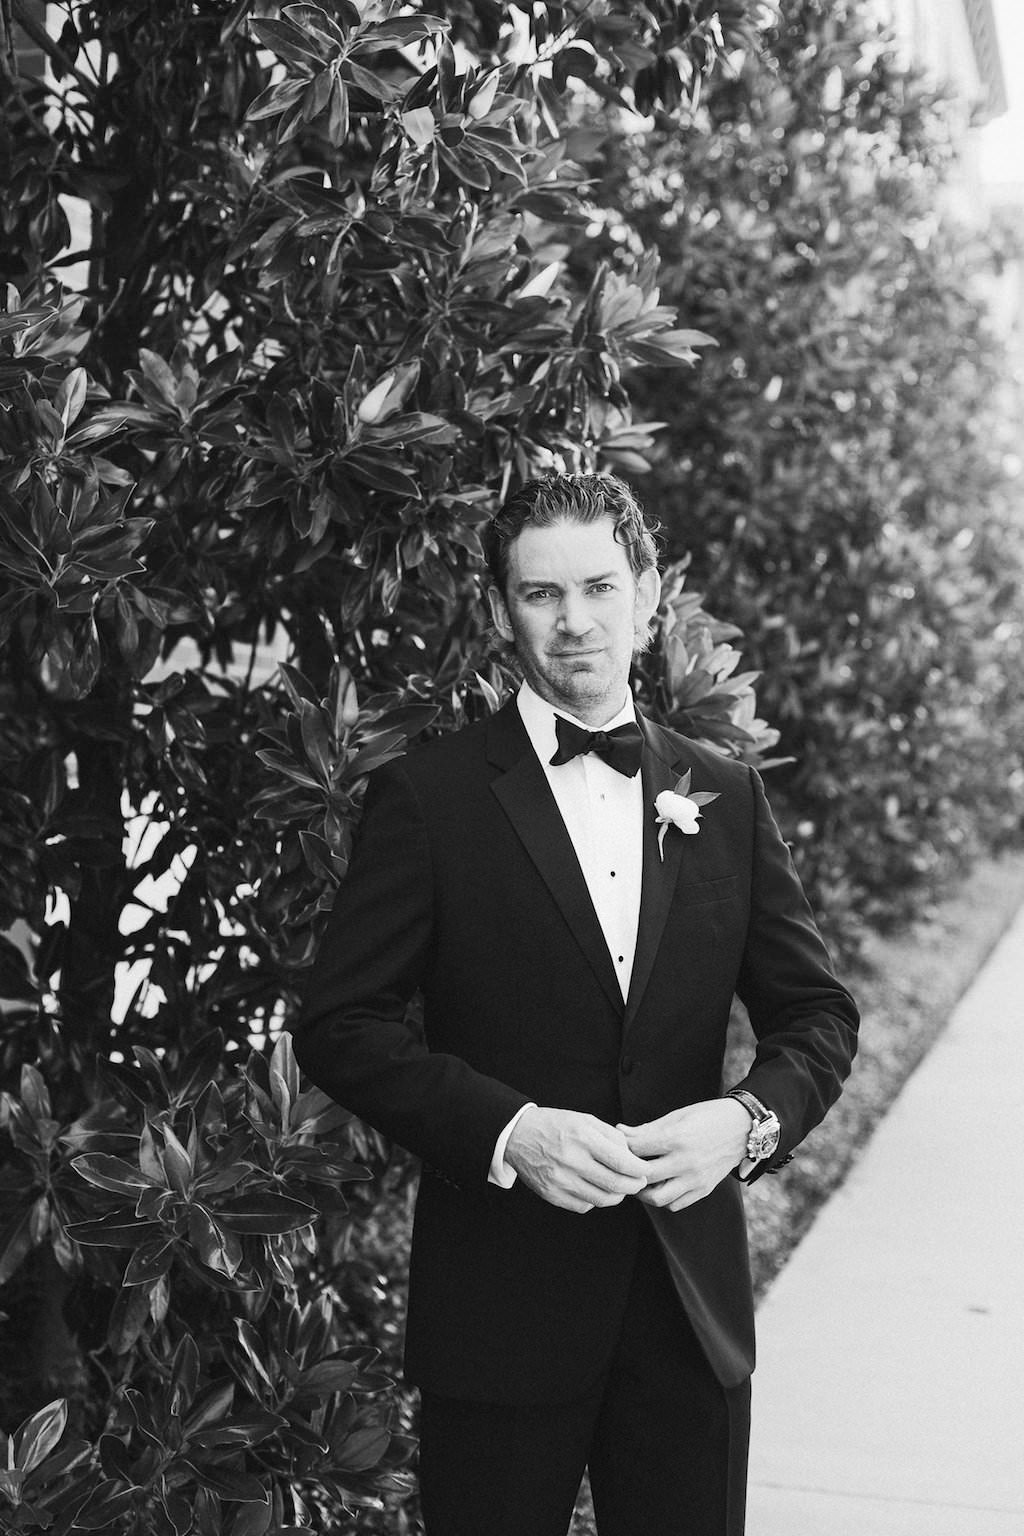 Outdoor Garden Groom Portrait wearing Black Tux with White Floral and Greenery Boutonniere   Tampa Bay Wedding Photographer Ailyn La Torre Photography